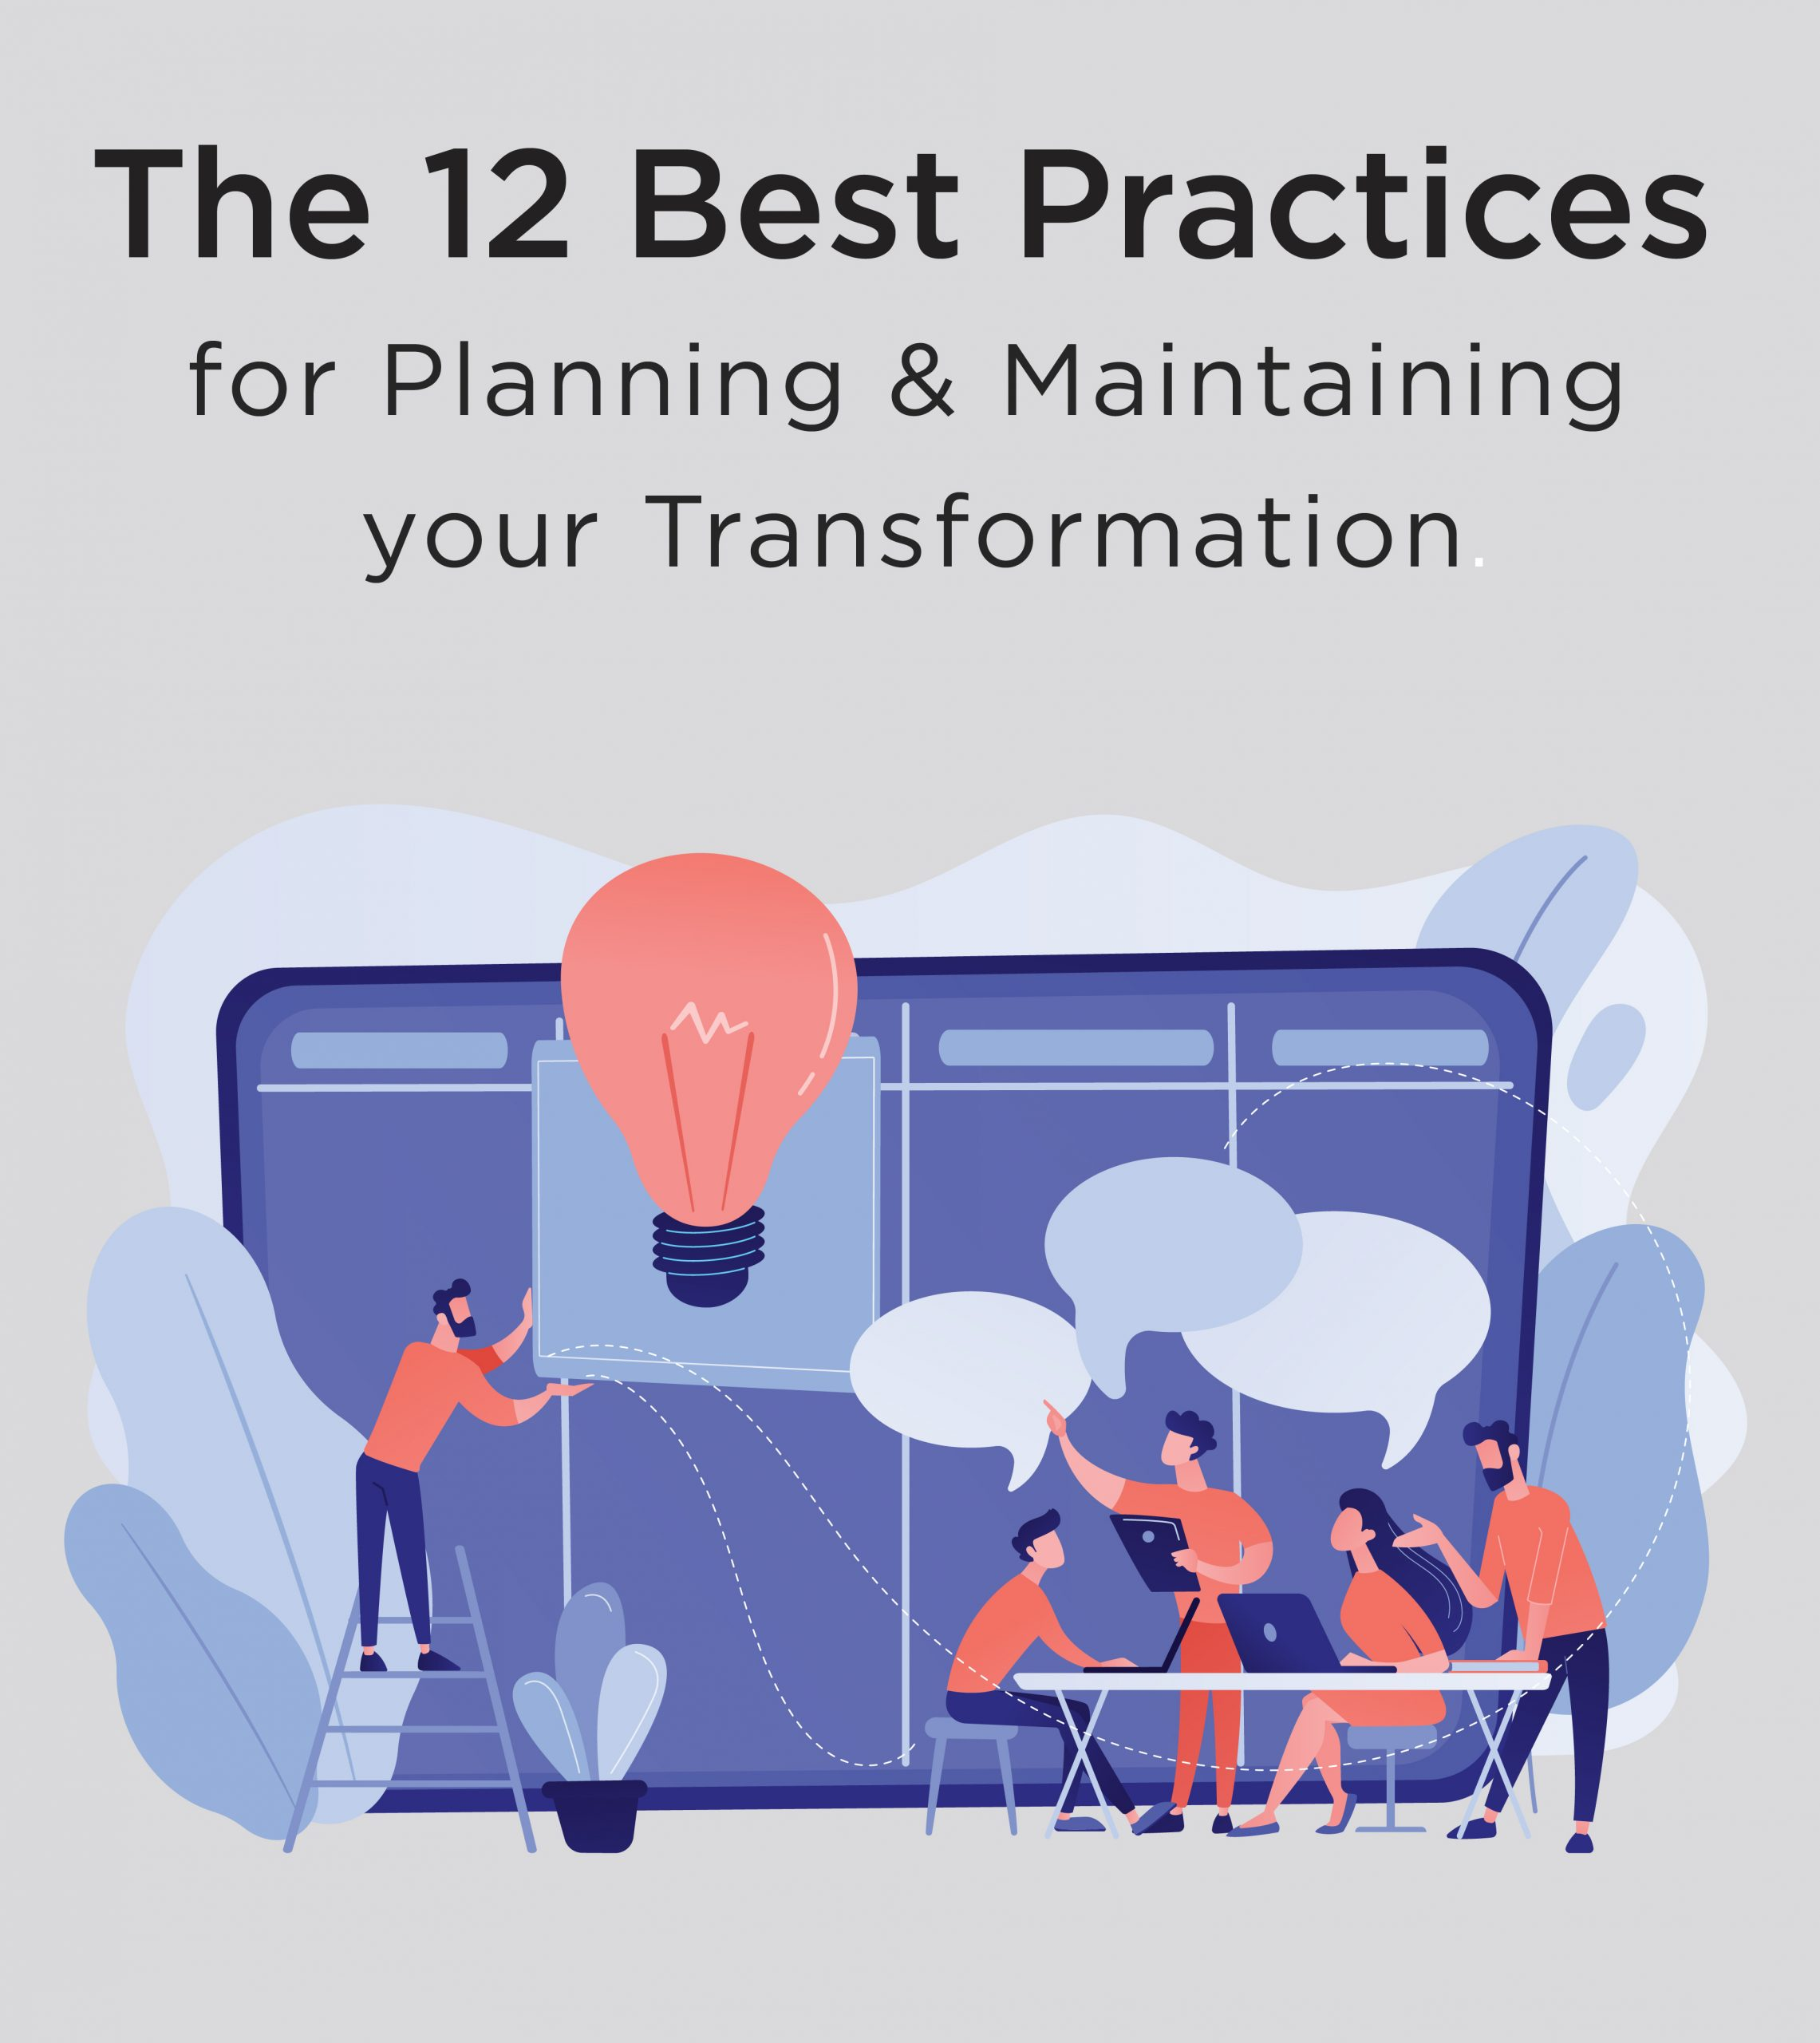 12 best practices for planning and maintaining transformations